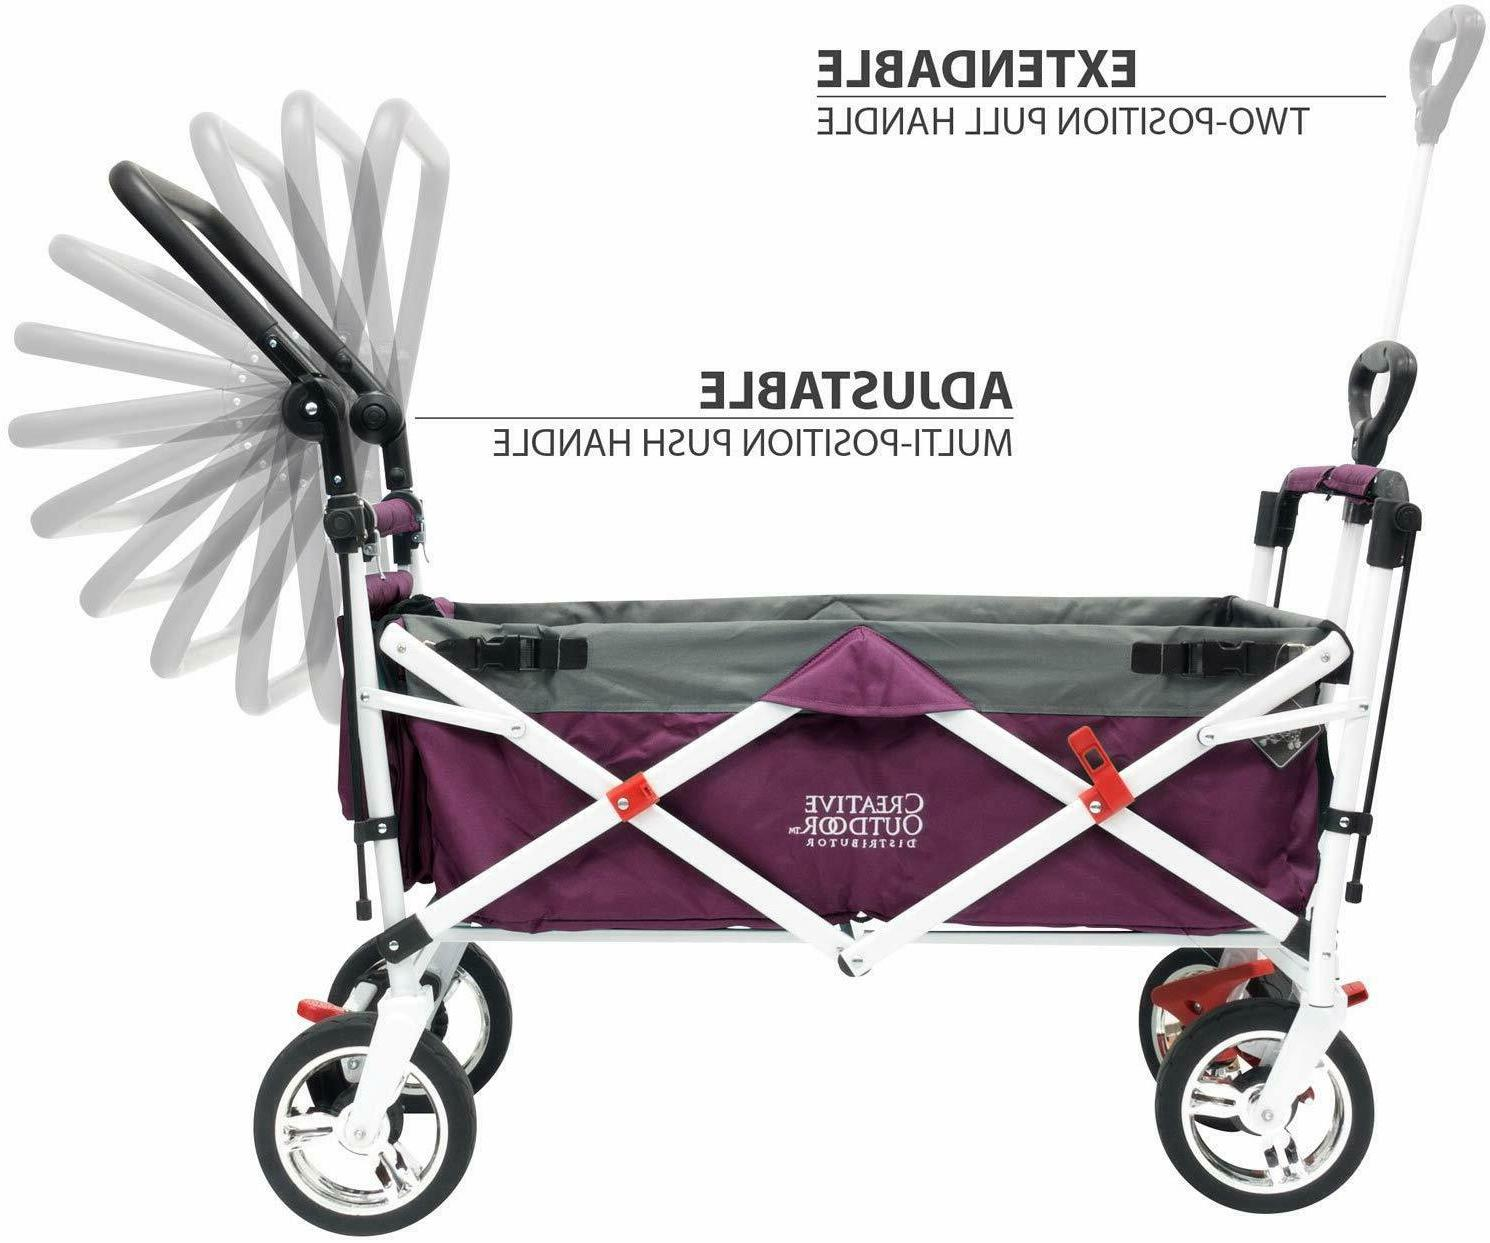 Creative Outdoor Folding Collapsible Wagon